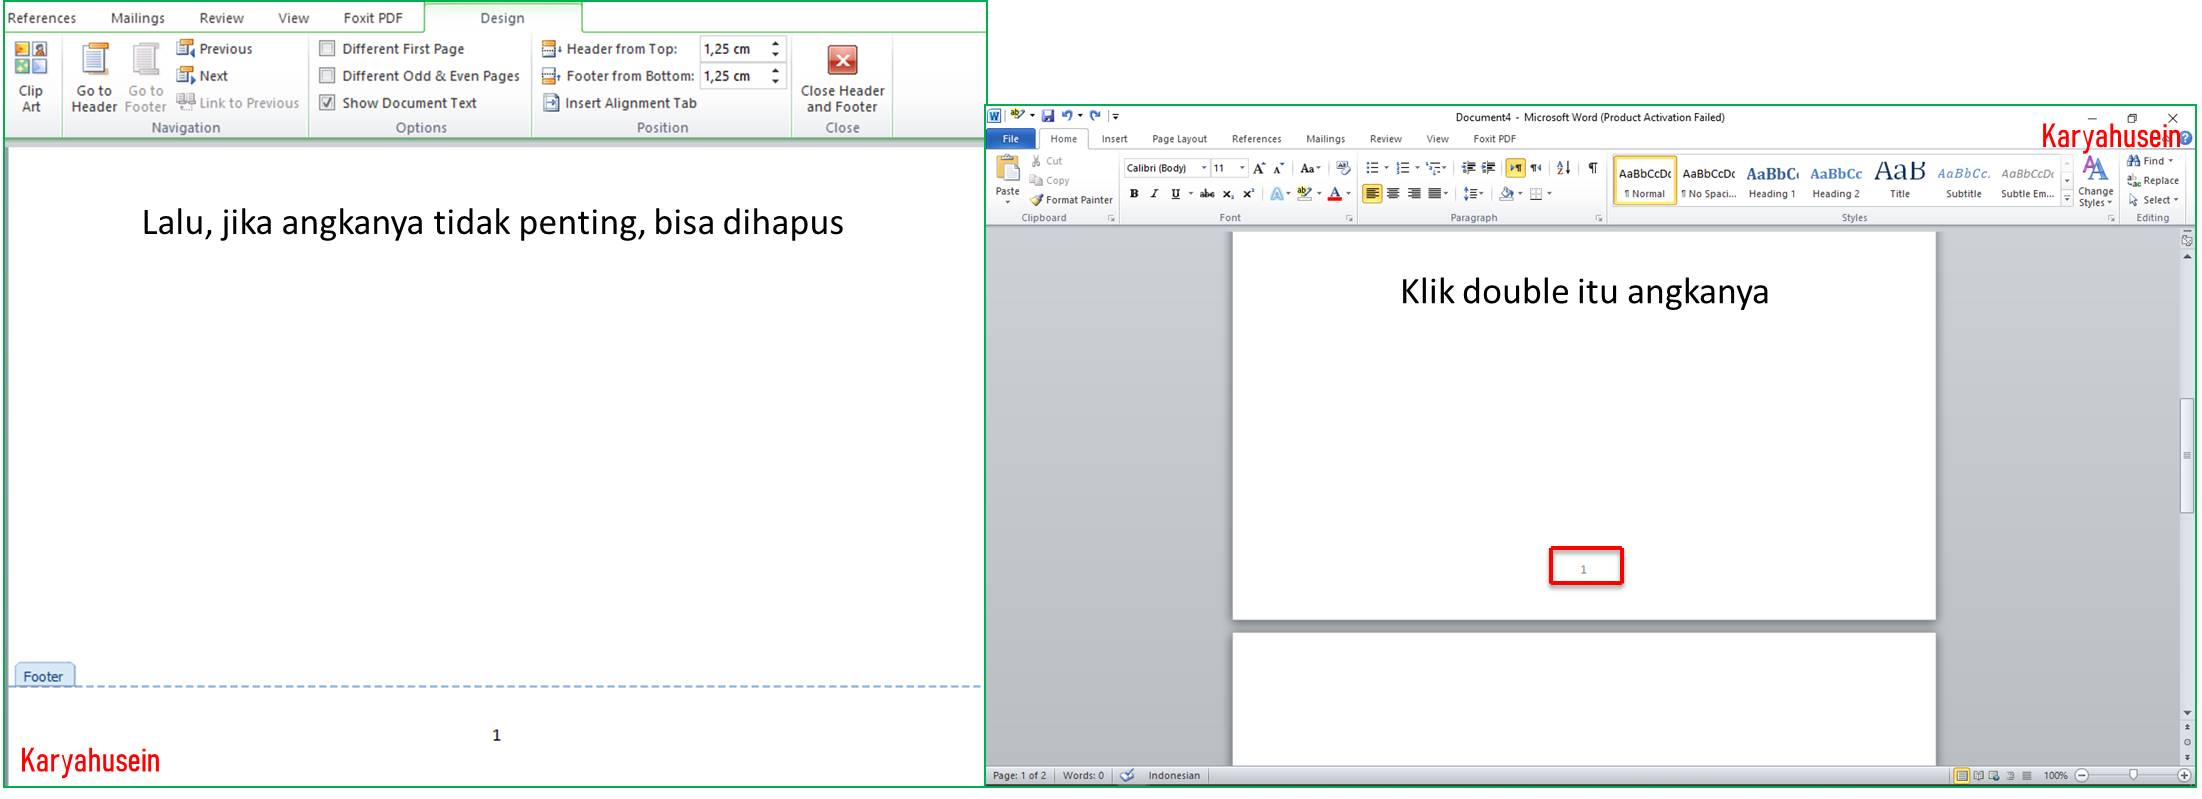 cara menghapus header and footer di word